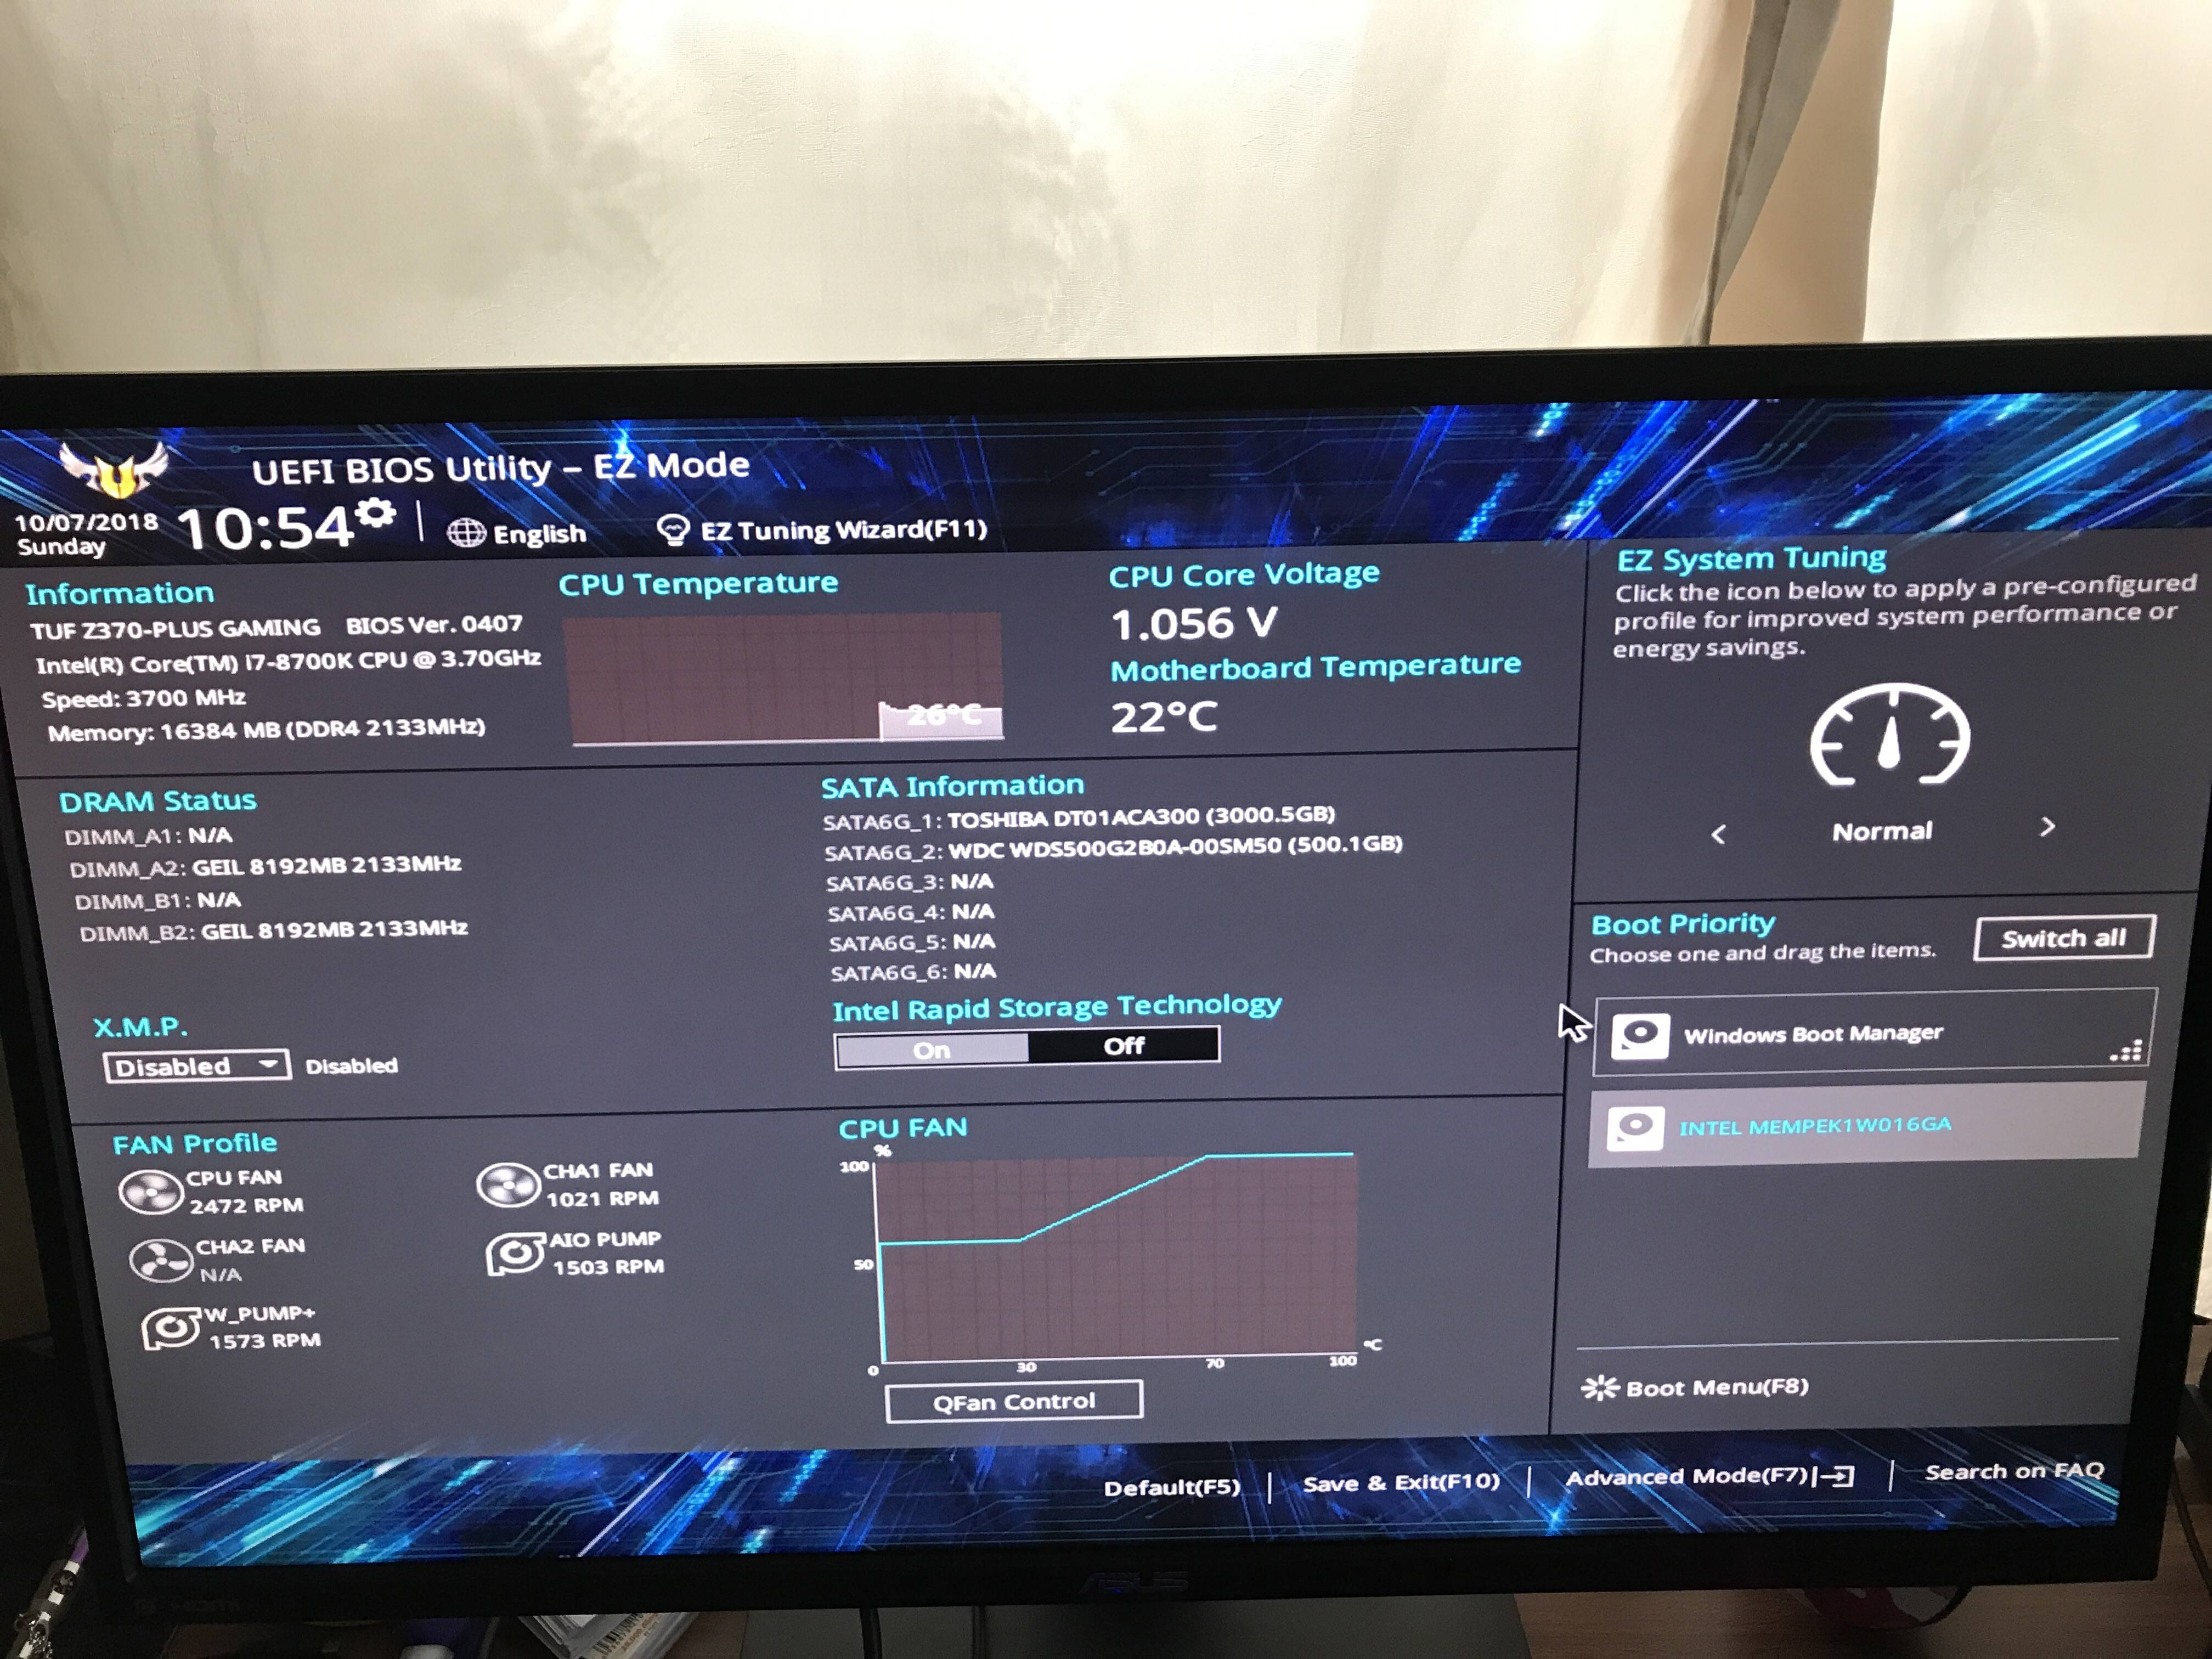 How to get out of Bios loop - Troubleshooting - Linus Tech Tips